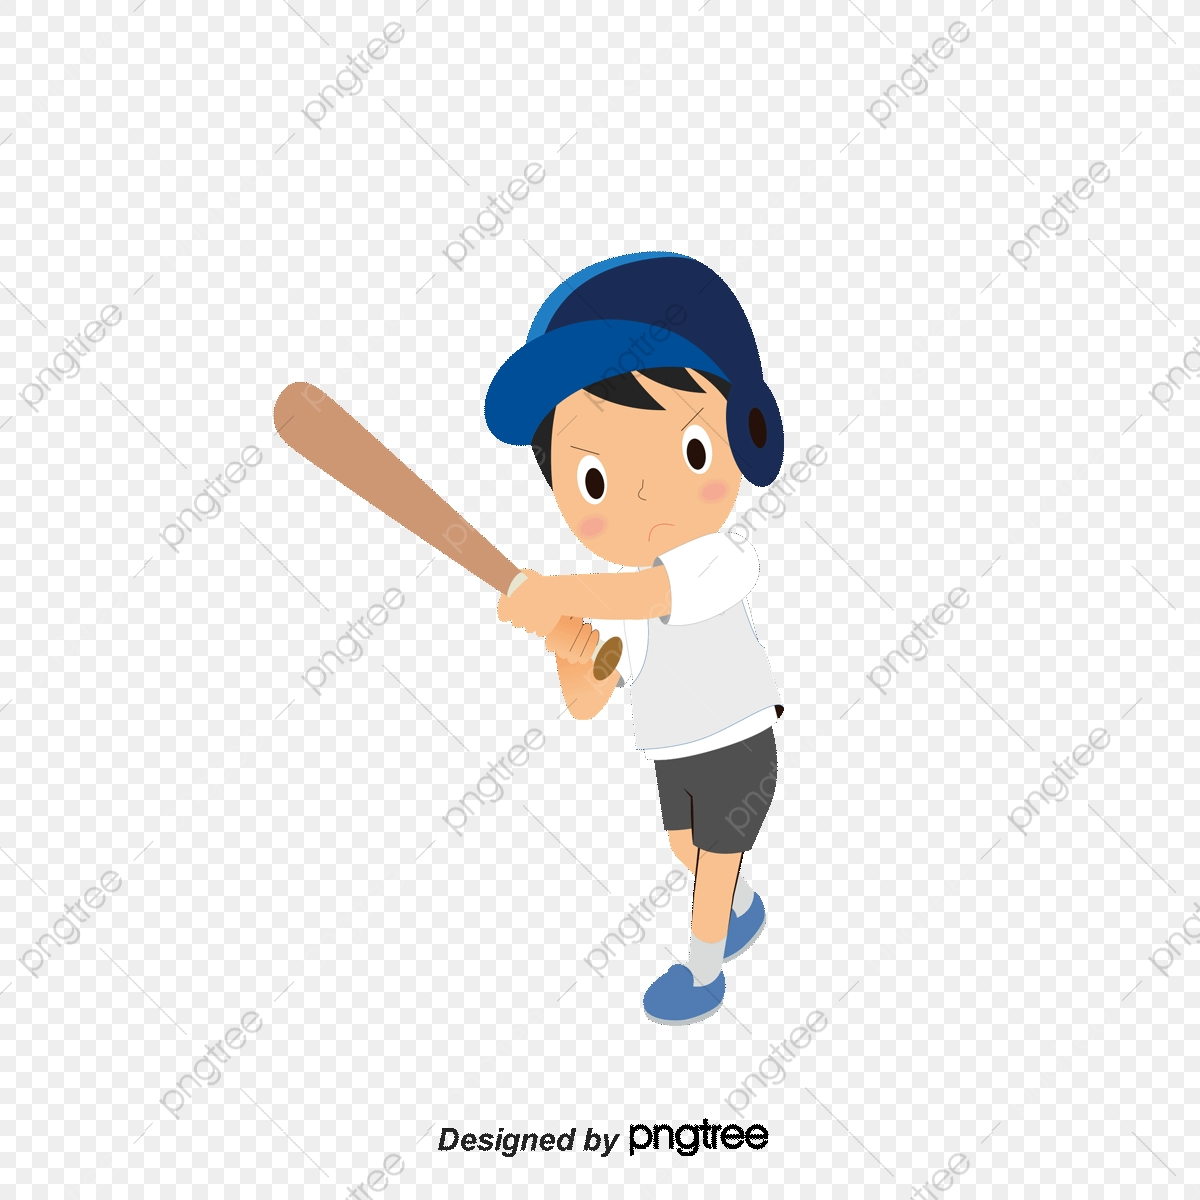 hight resolution of commercial use resource upgrade to premium plan and get license authorization upgradenow baseball baseball clipart